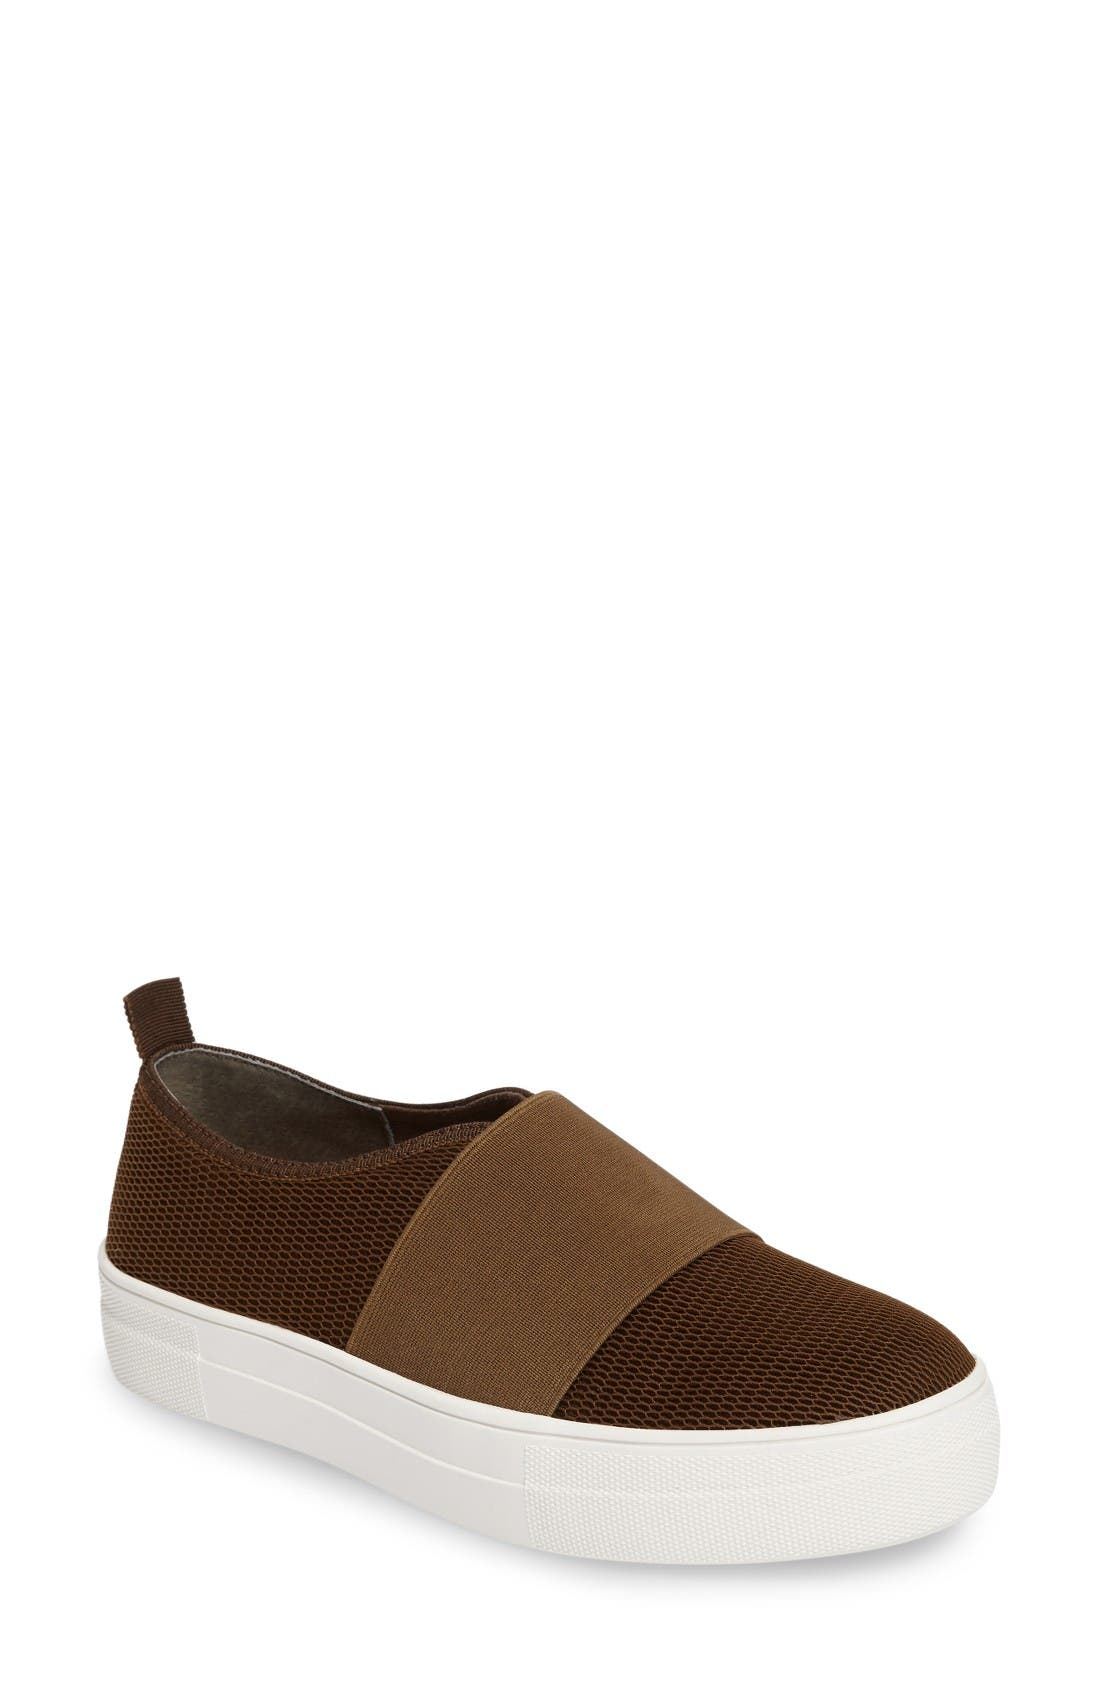 Alternate Image 1 Selected - Steve Madden Glenn Slip-On Platform Sneaker (Women)